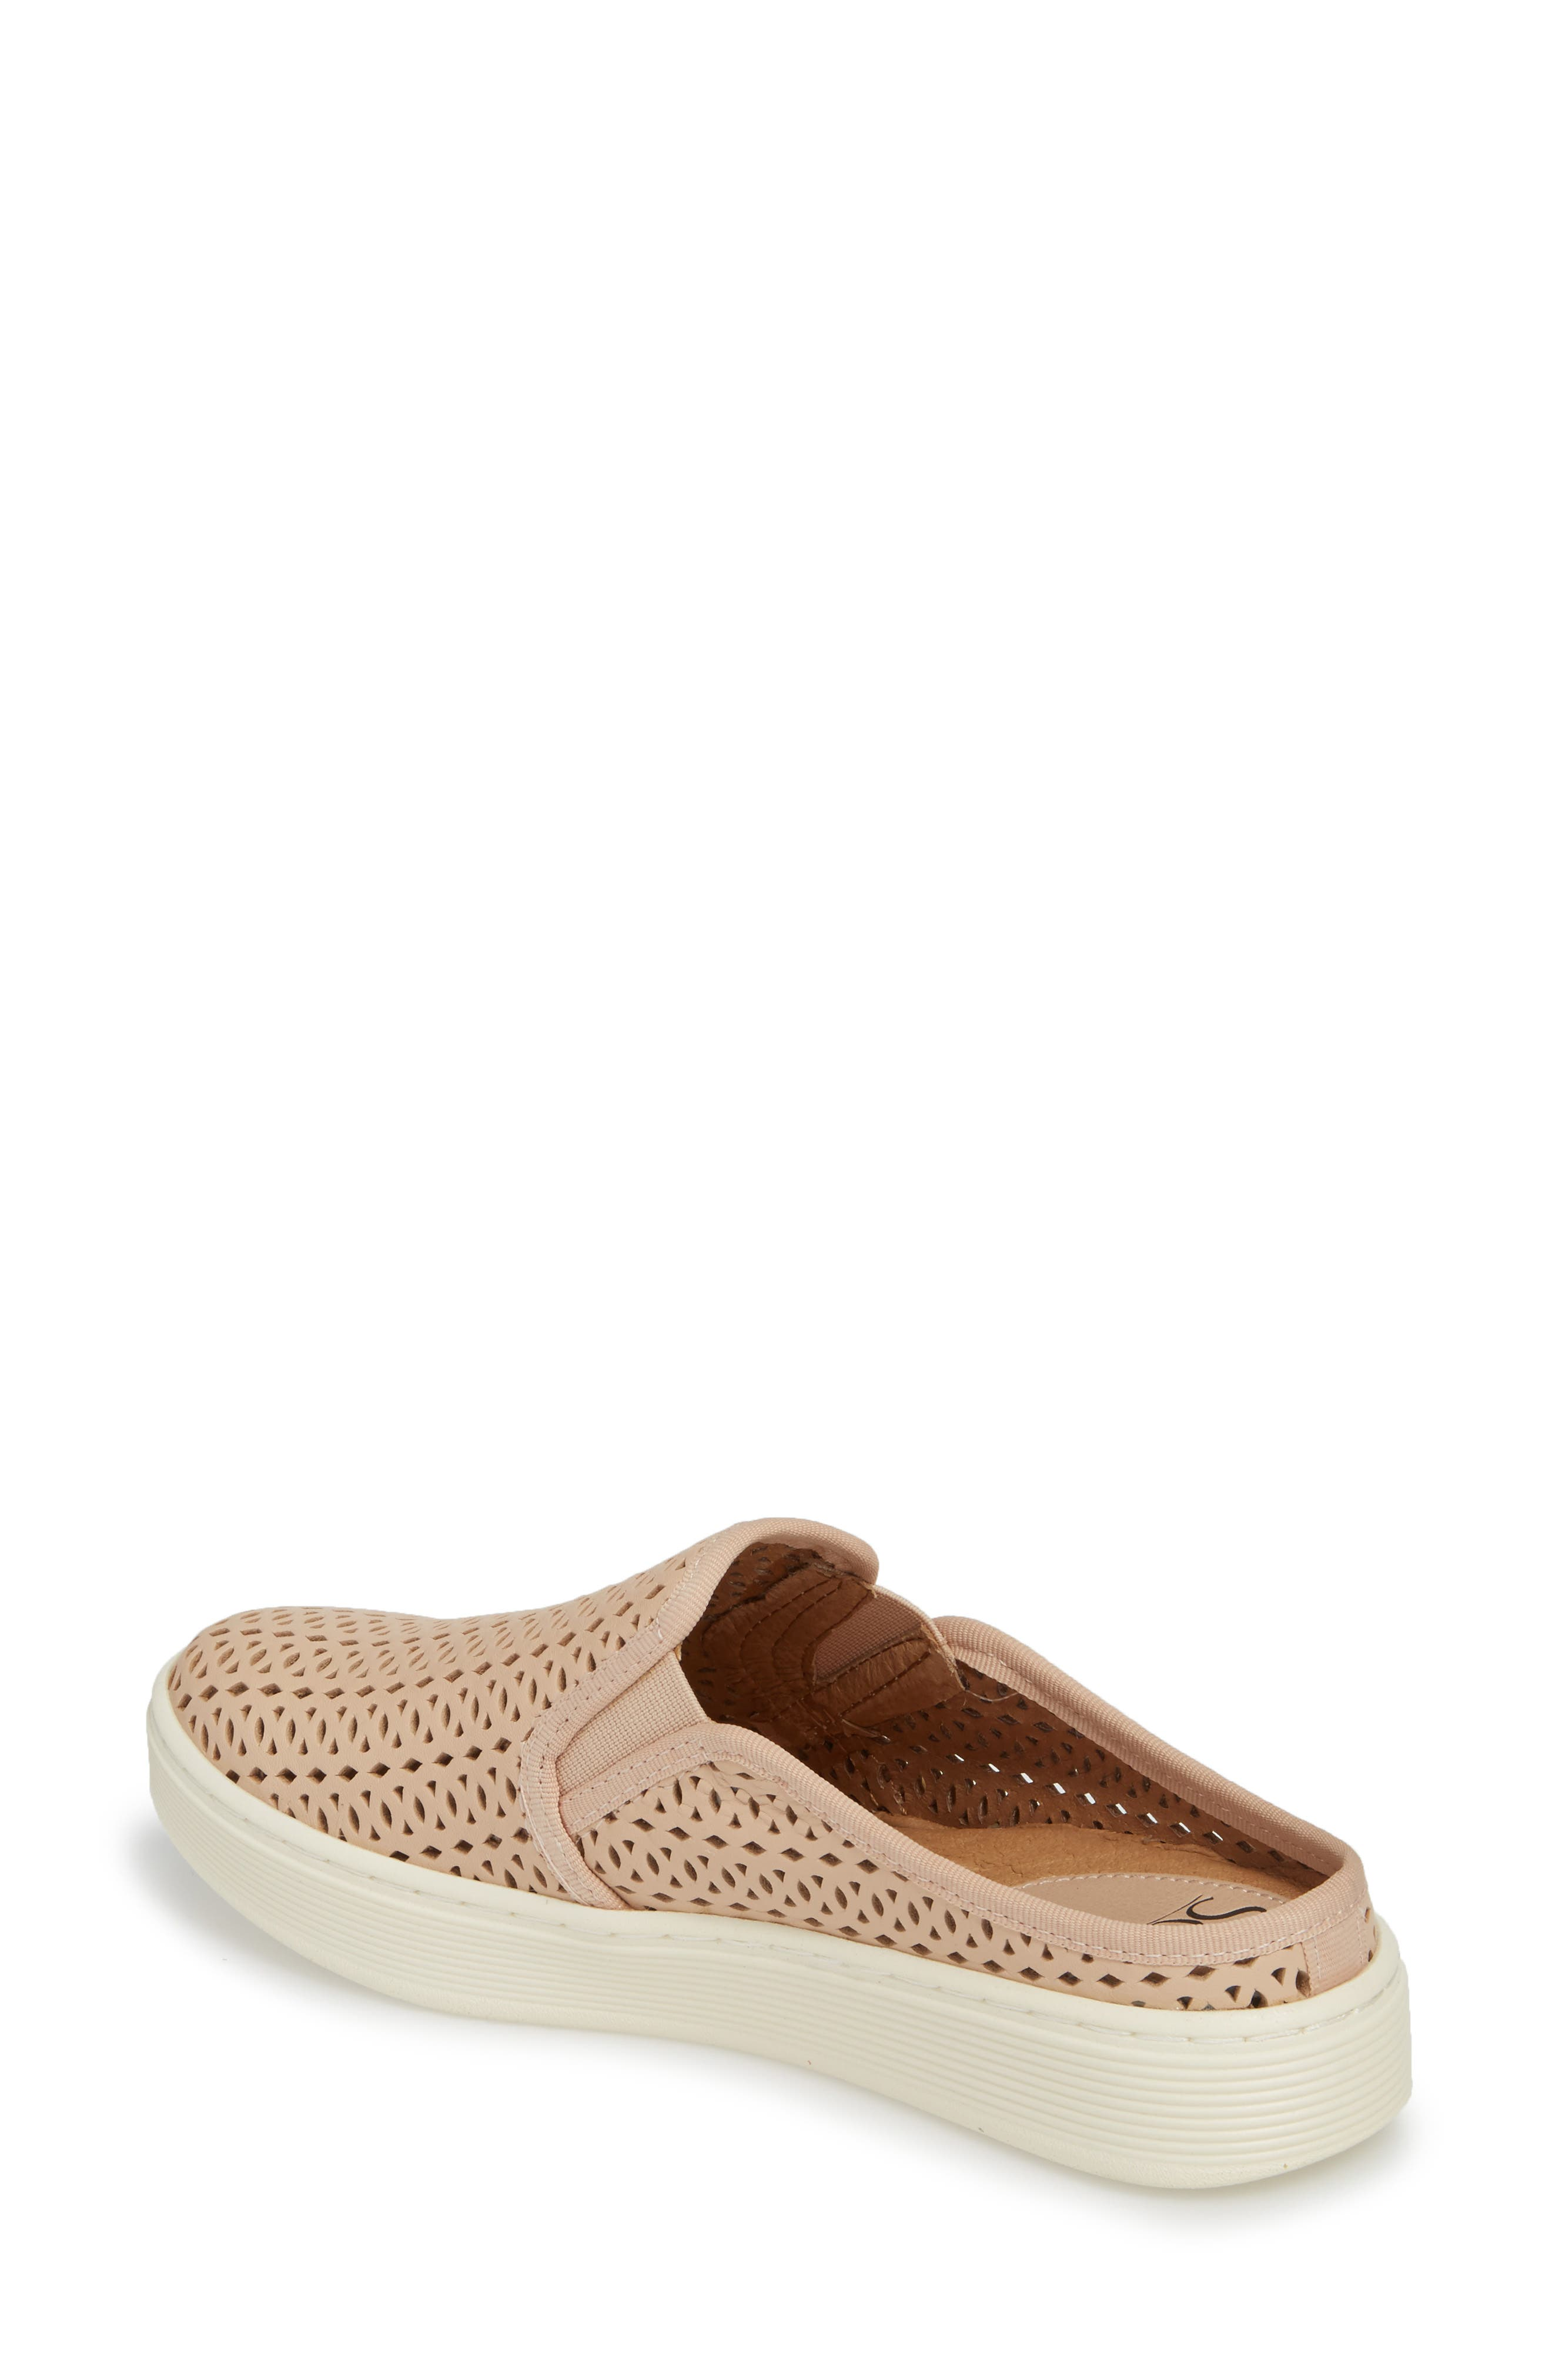 Somers II Sneaker Mule,                             Alternate thumbnail 2, color,                             Blush Leather